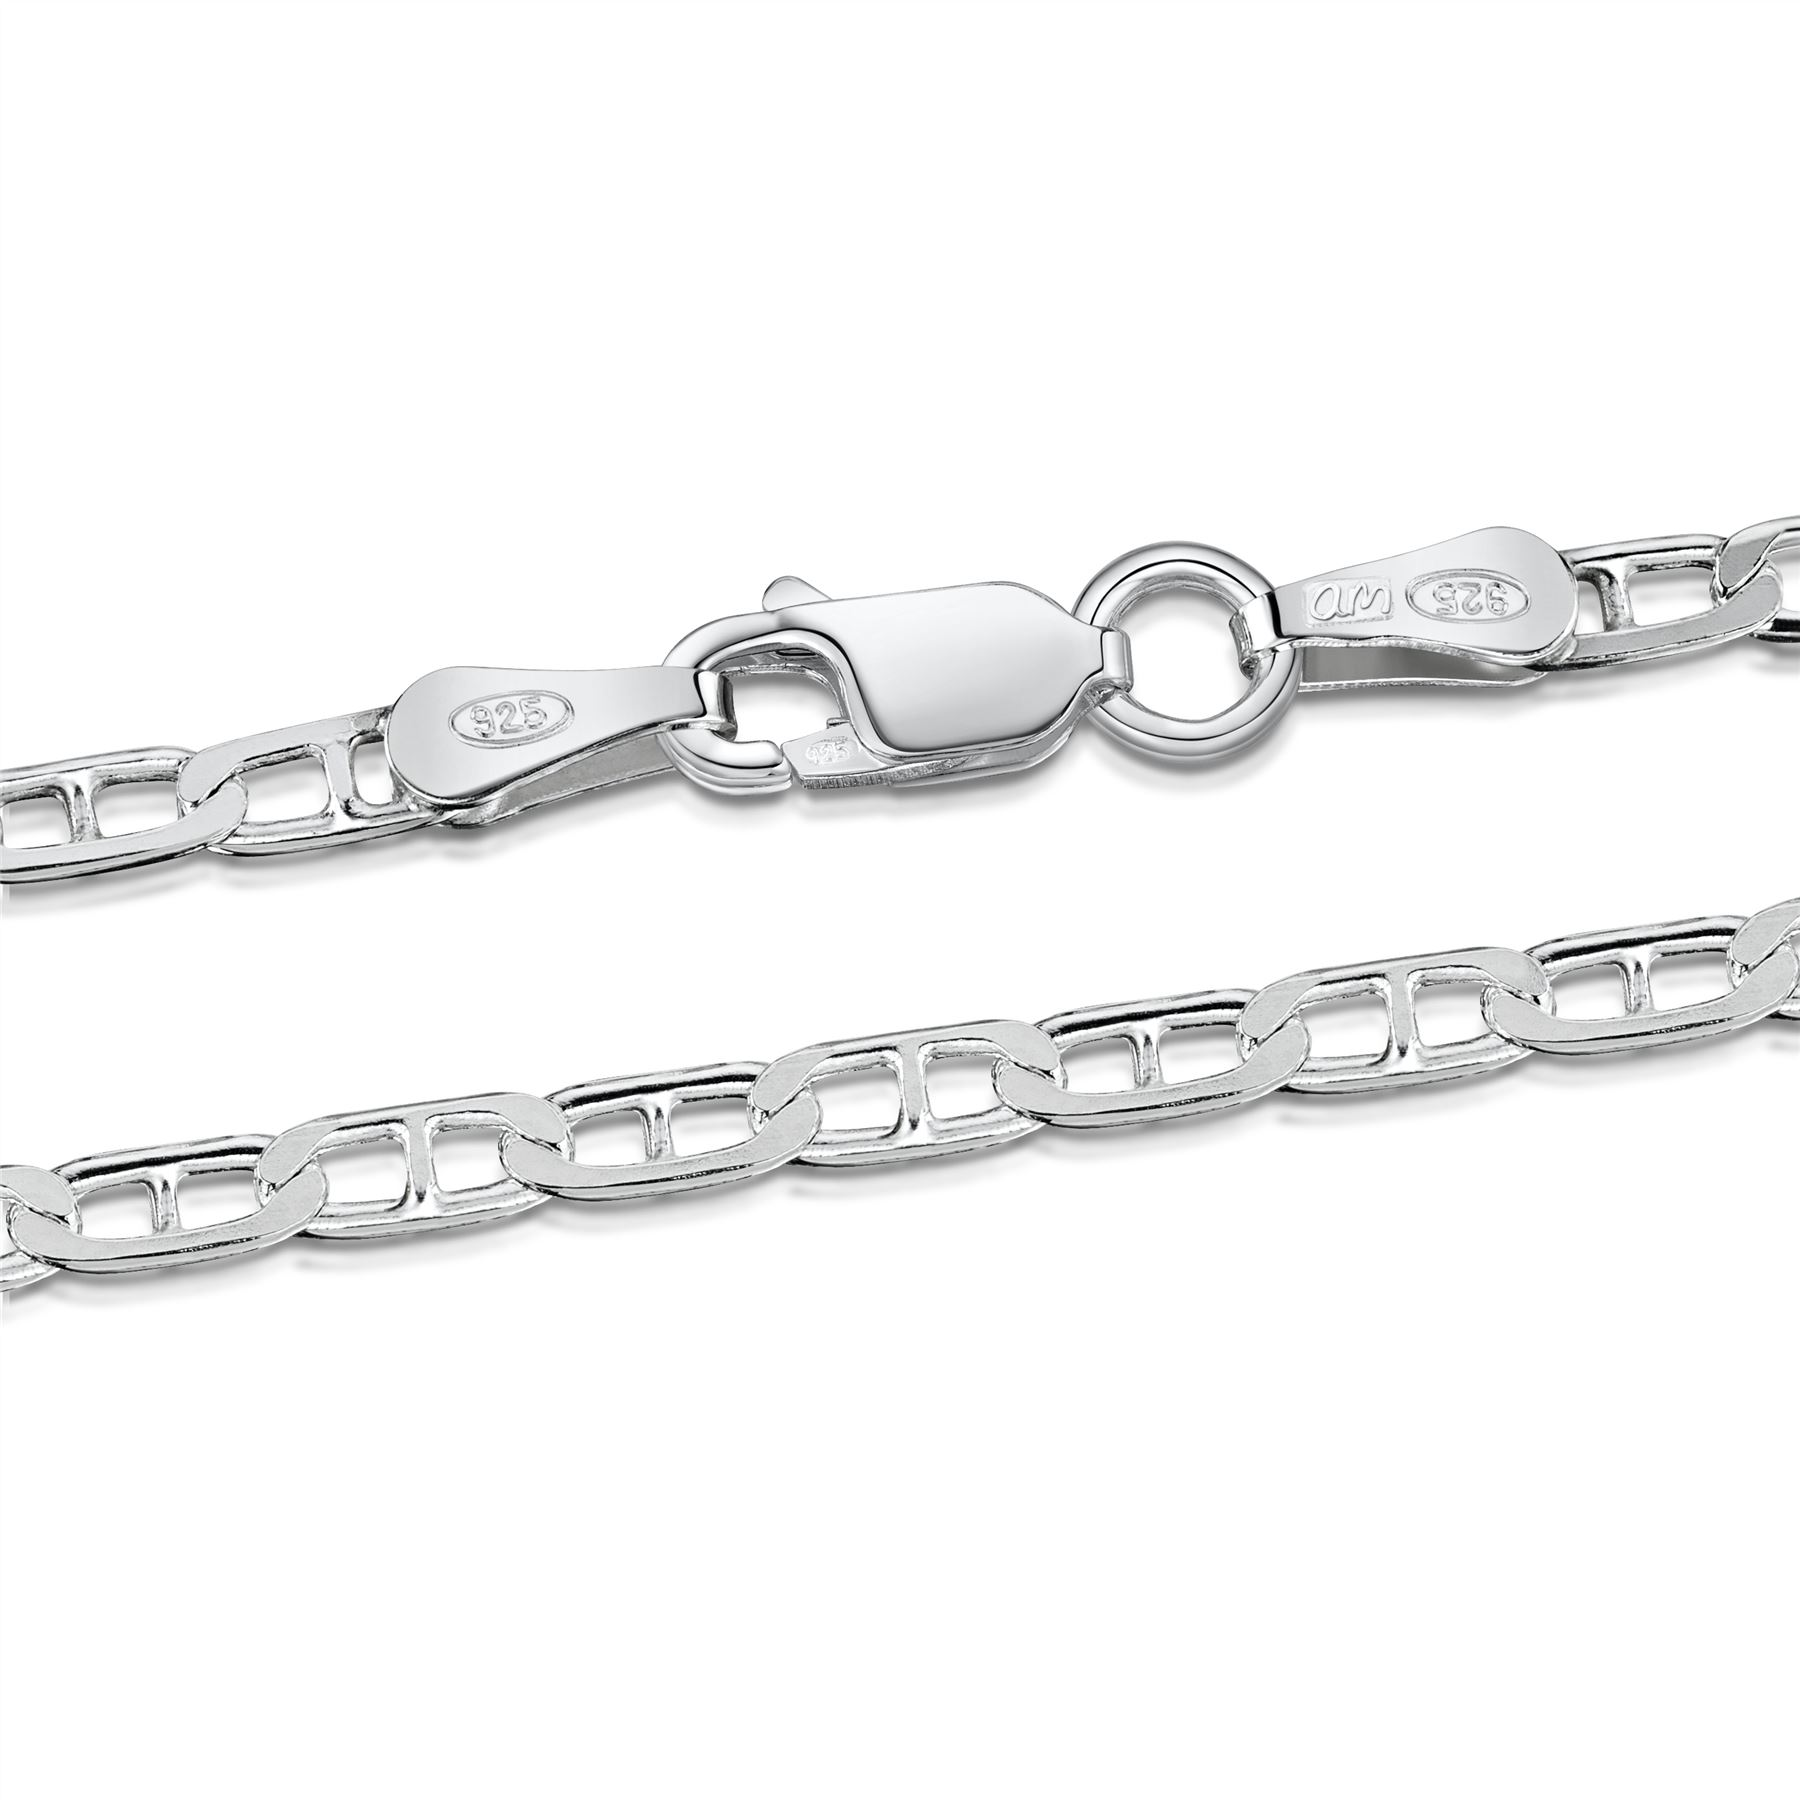 Amberta-Jewelry-Genuine-925-Sterling-Silver-Bracelet-Bangle-Chain-Made-in-Italy thumbnail 33